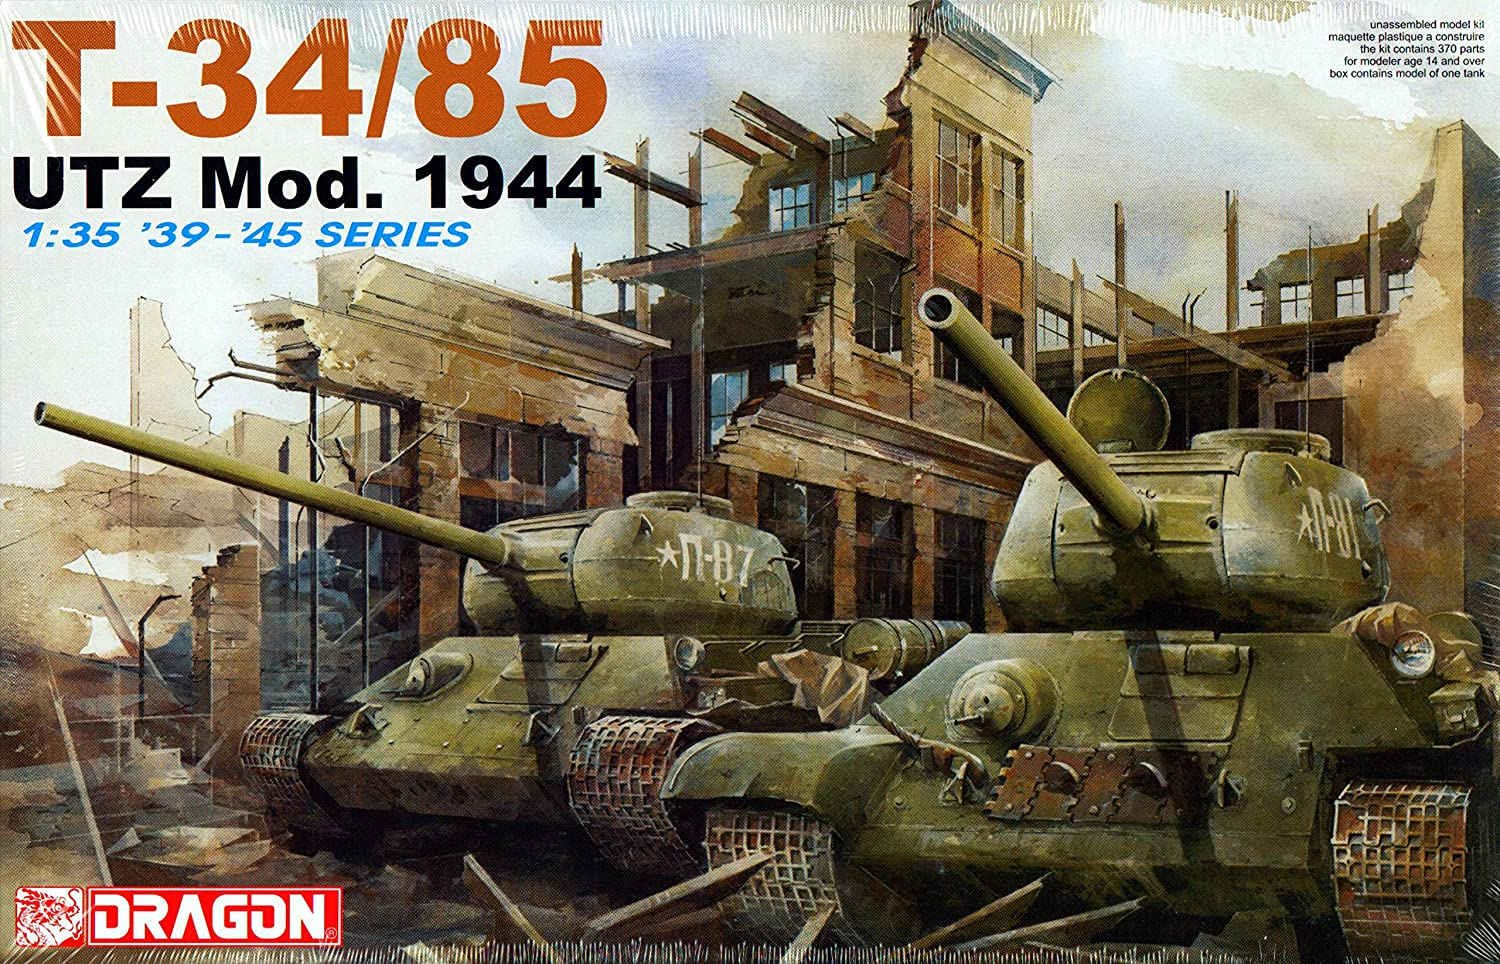 B0006O8RJQ Dragon T-34/85 Utz Mod. 1944 1:35 Scale Military Model Kit A1nDOycrUNL